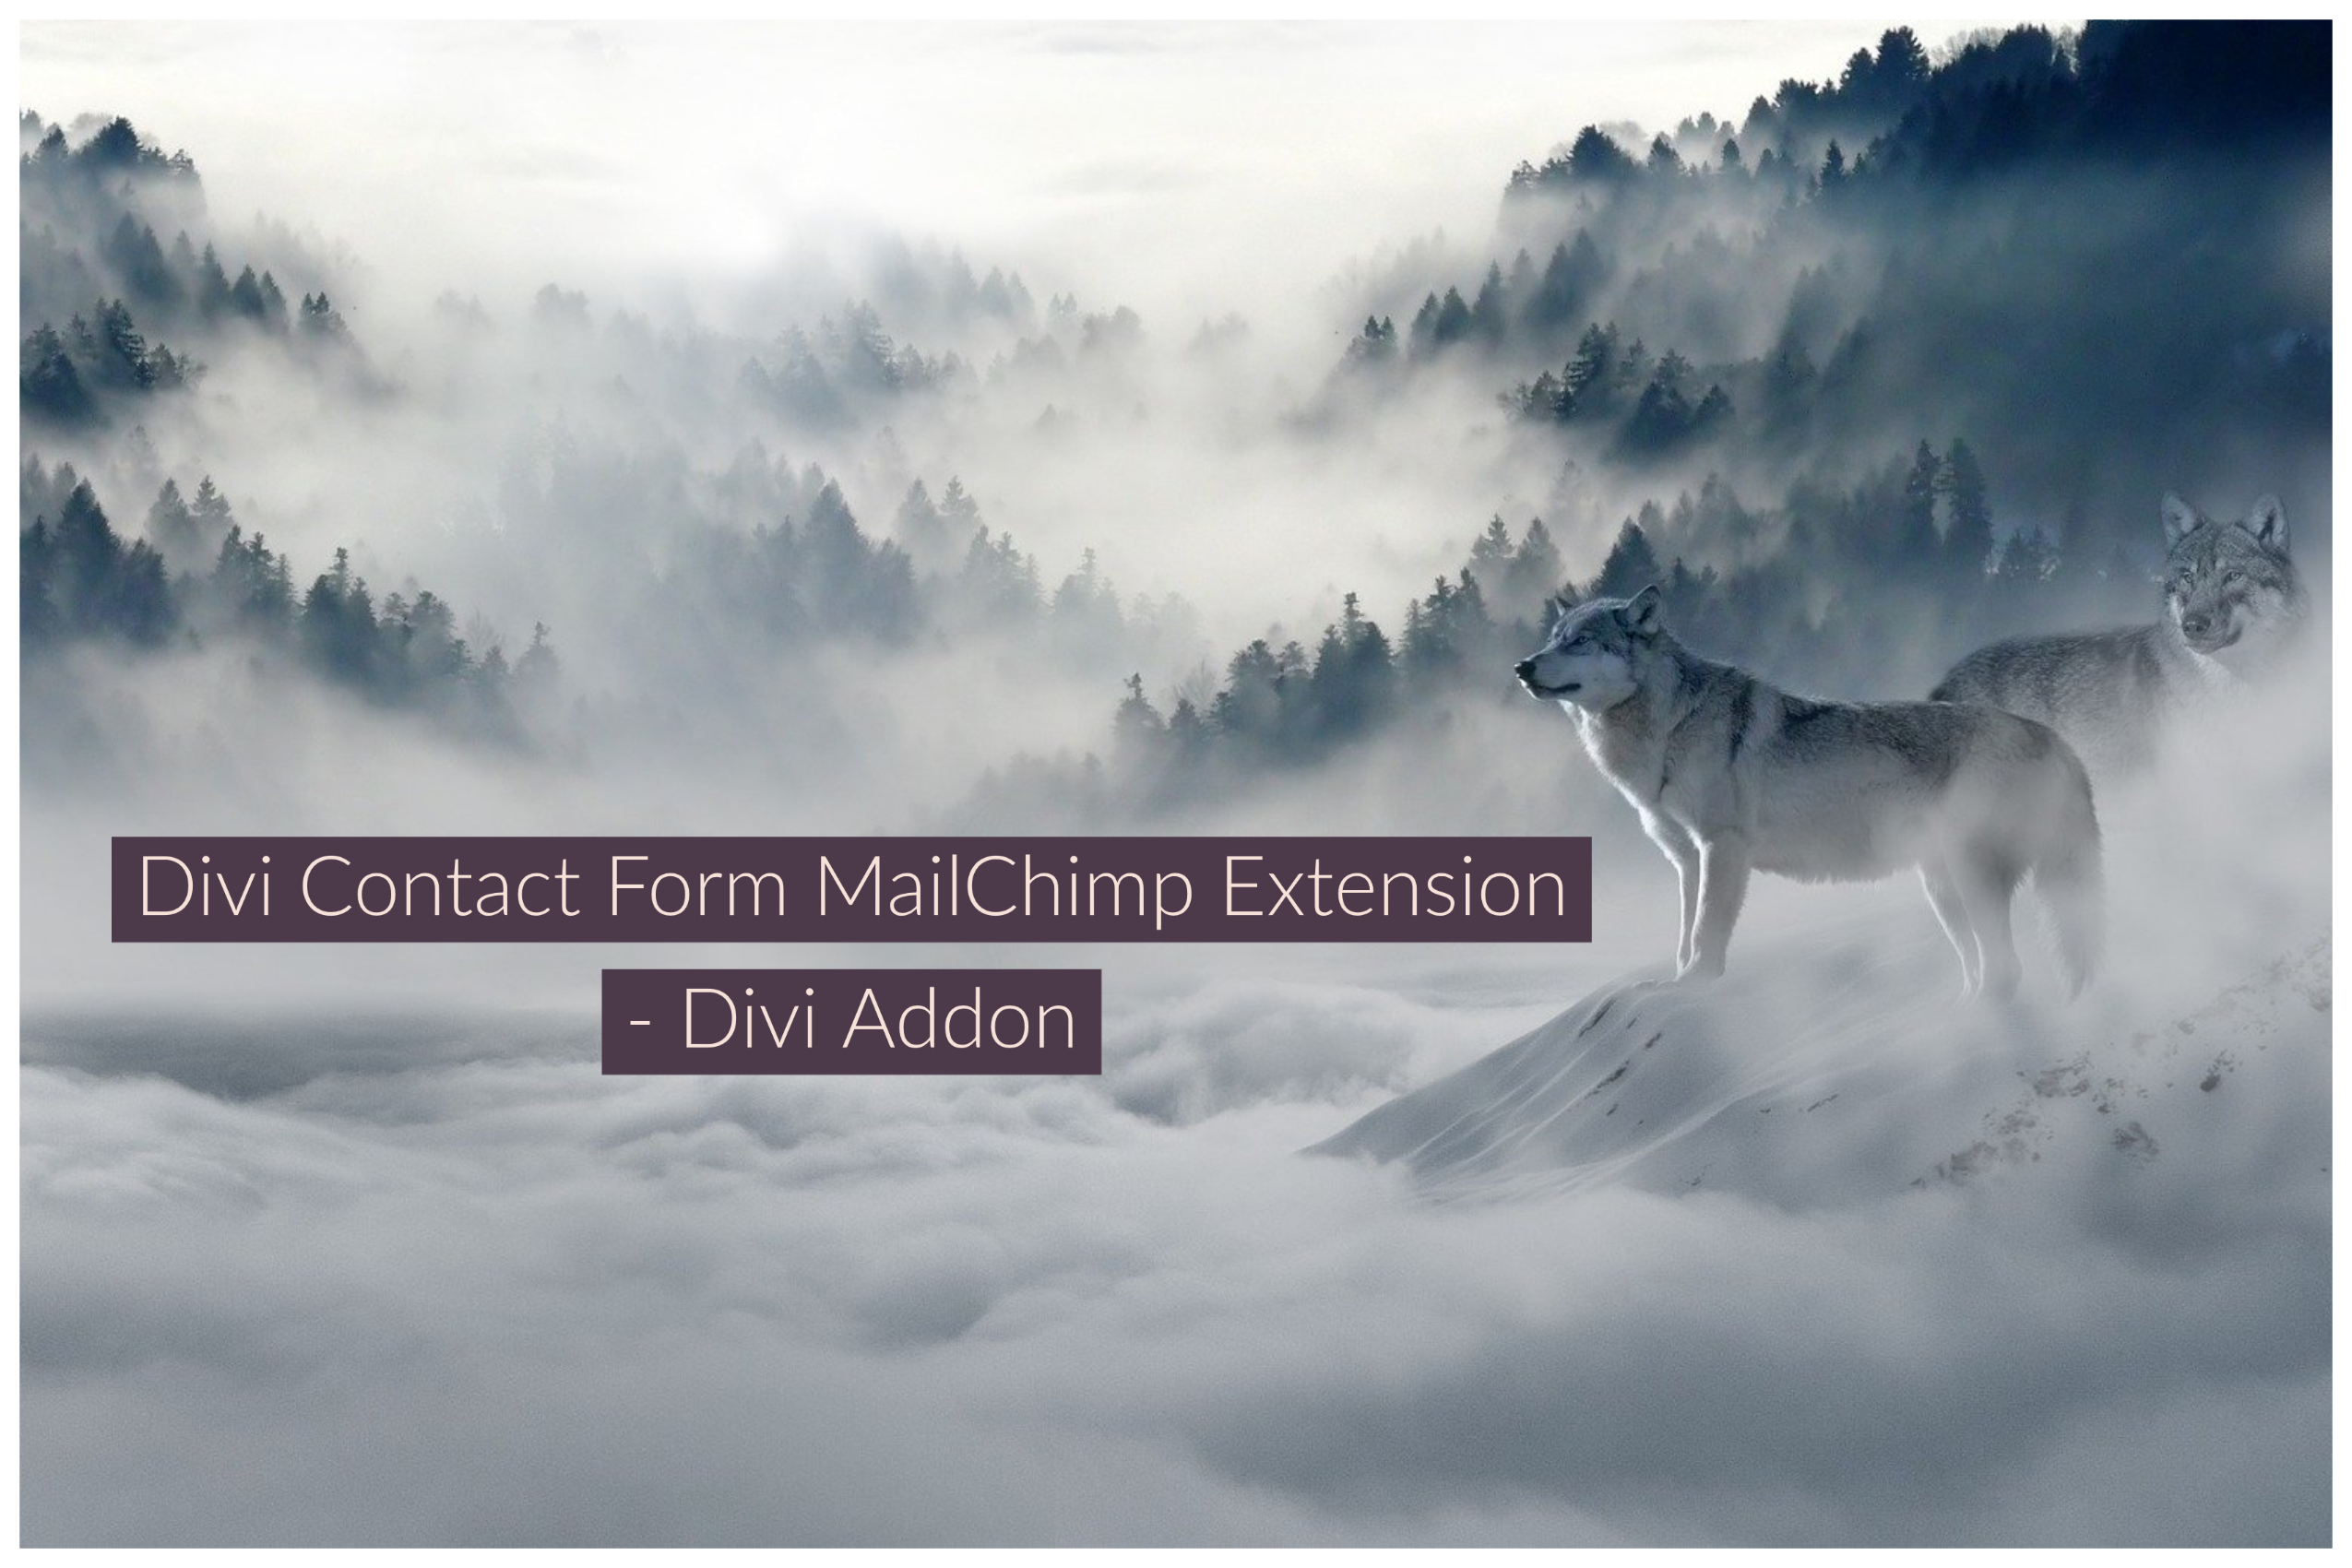 Divi Contact Form MailChimp Extension